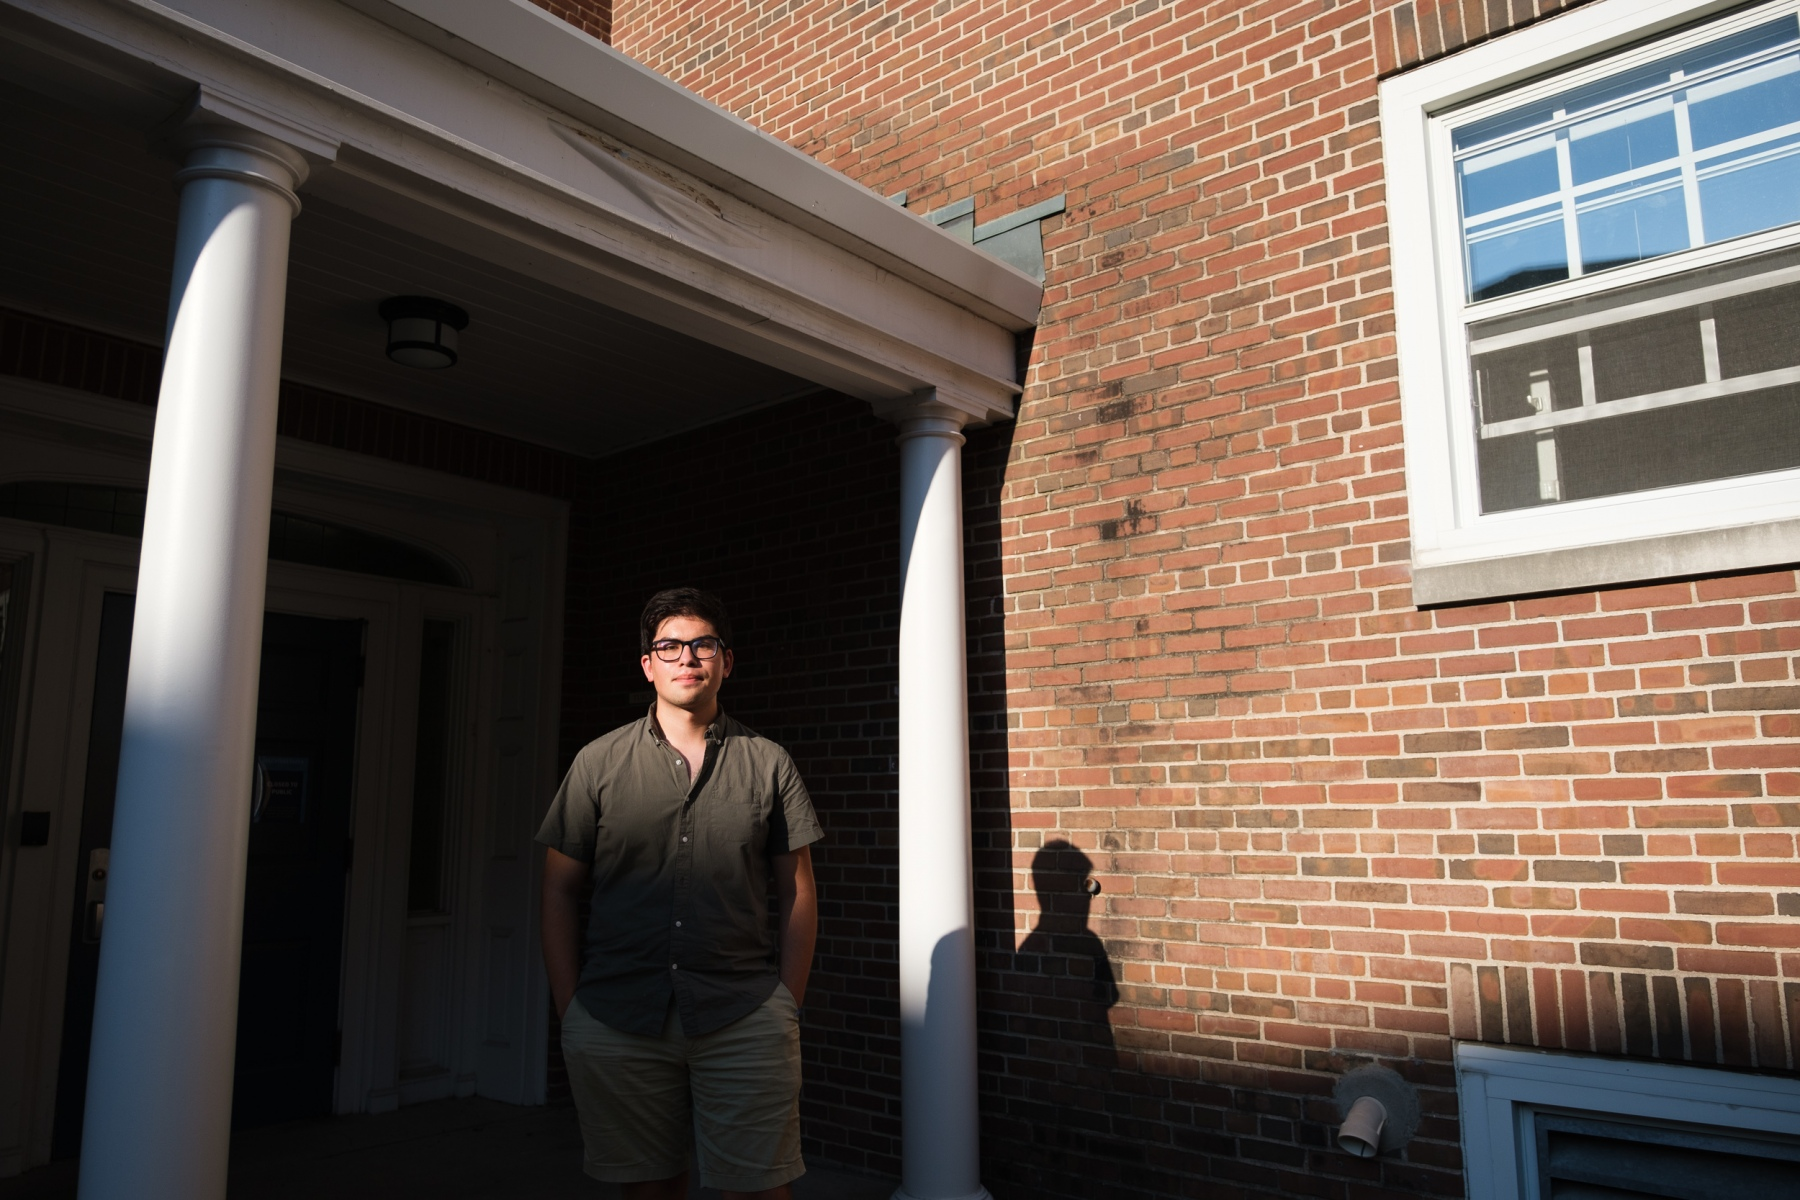 As summer ends, the Class of 2024 begins college amid a devastating pandemic and a national reckoning with systemic racism. Macalester first year Tyler Sanchez poses for a portrait outside Turck Residence Hall on August 28, 2020.